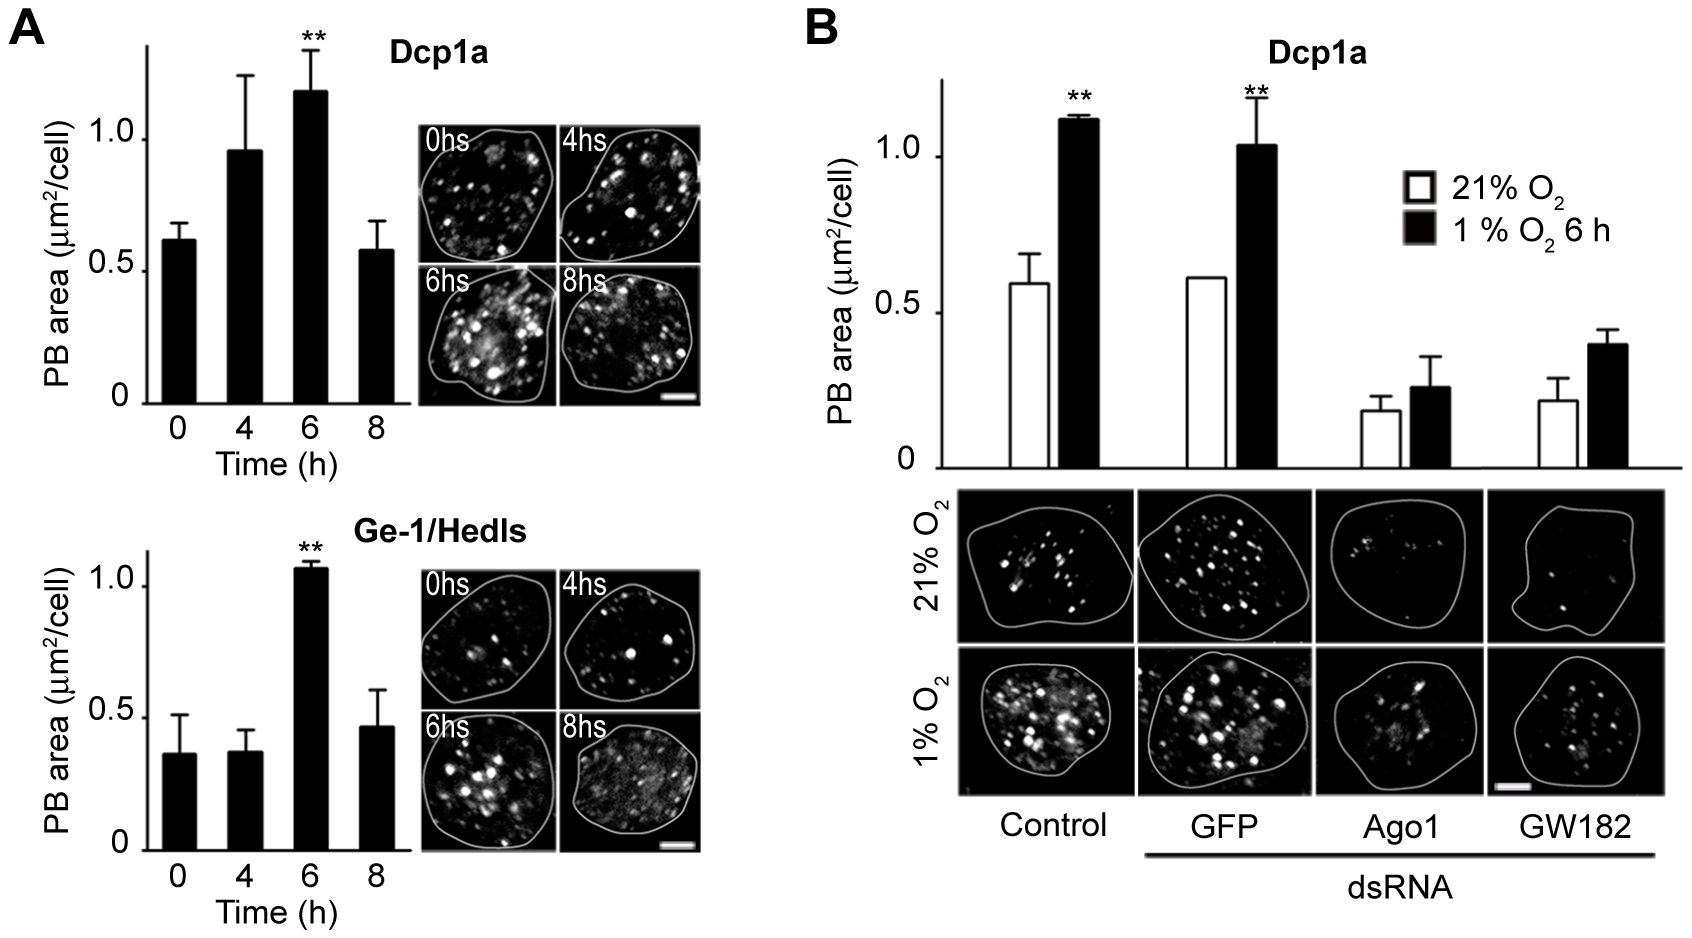 PBs accumulate in cells exposed to hypoxia in an Ago1- and GW182-dependent manner.